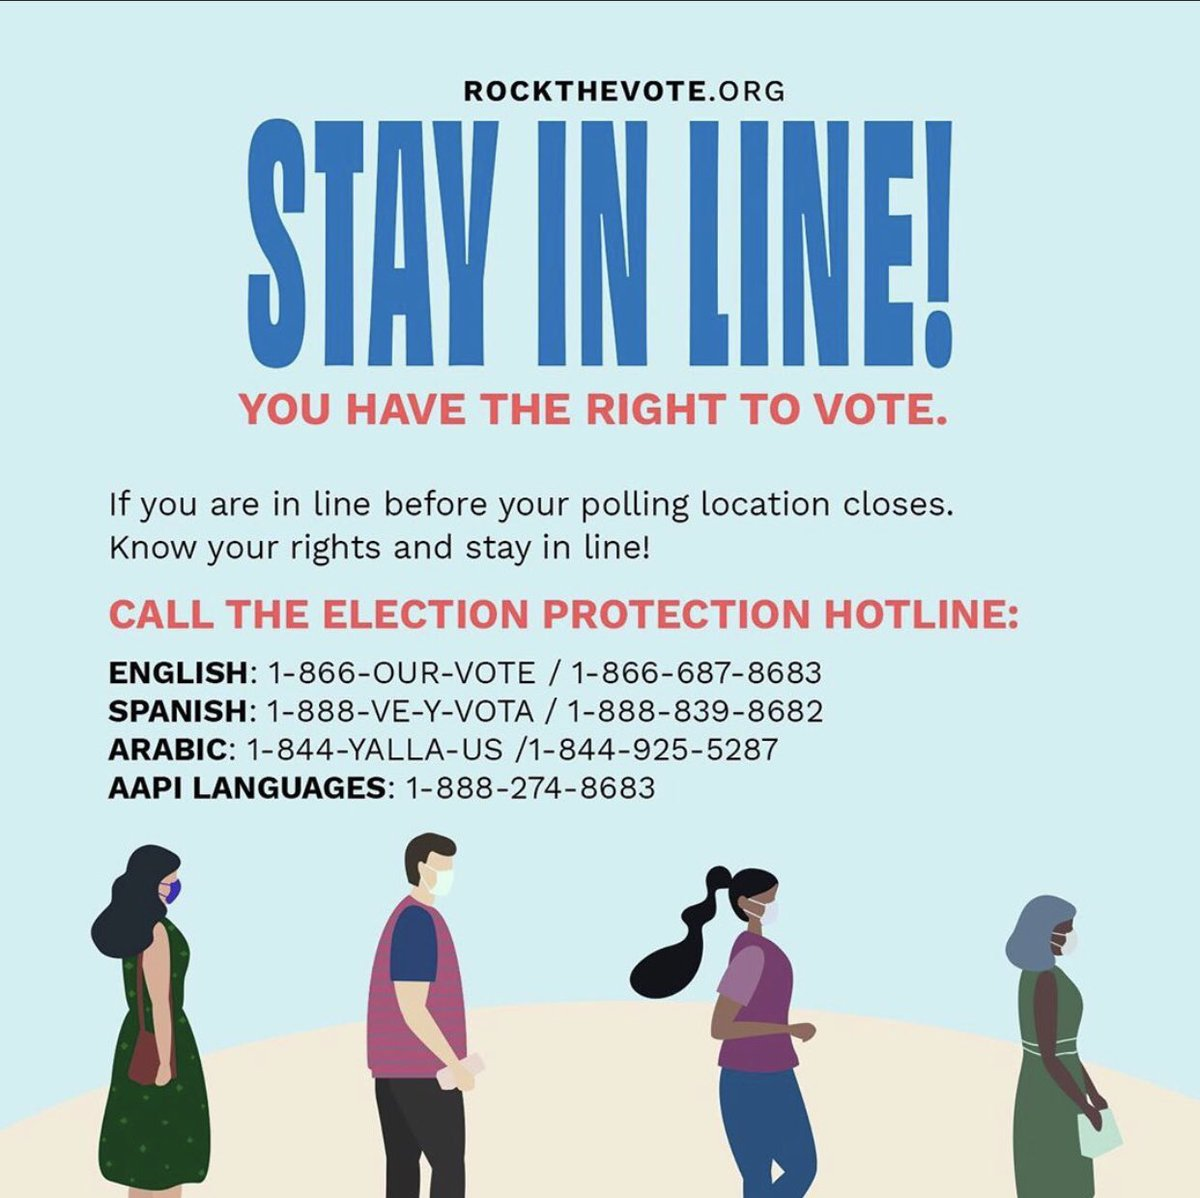 Fight #VoterSuppression and screenshot this one and save it as a part of your #PlanToVote. @RockTheVote #VOTE #VoteEarly #VoteBlue #VoteBidenHarris2020 #VotingRights #BlackLivesMatter https://t.co/mlba3fAVHu